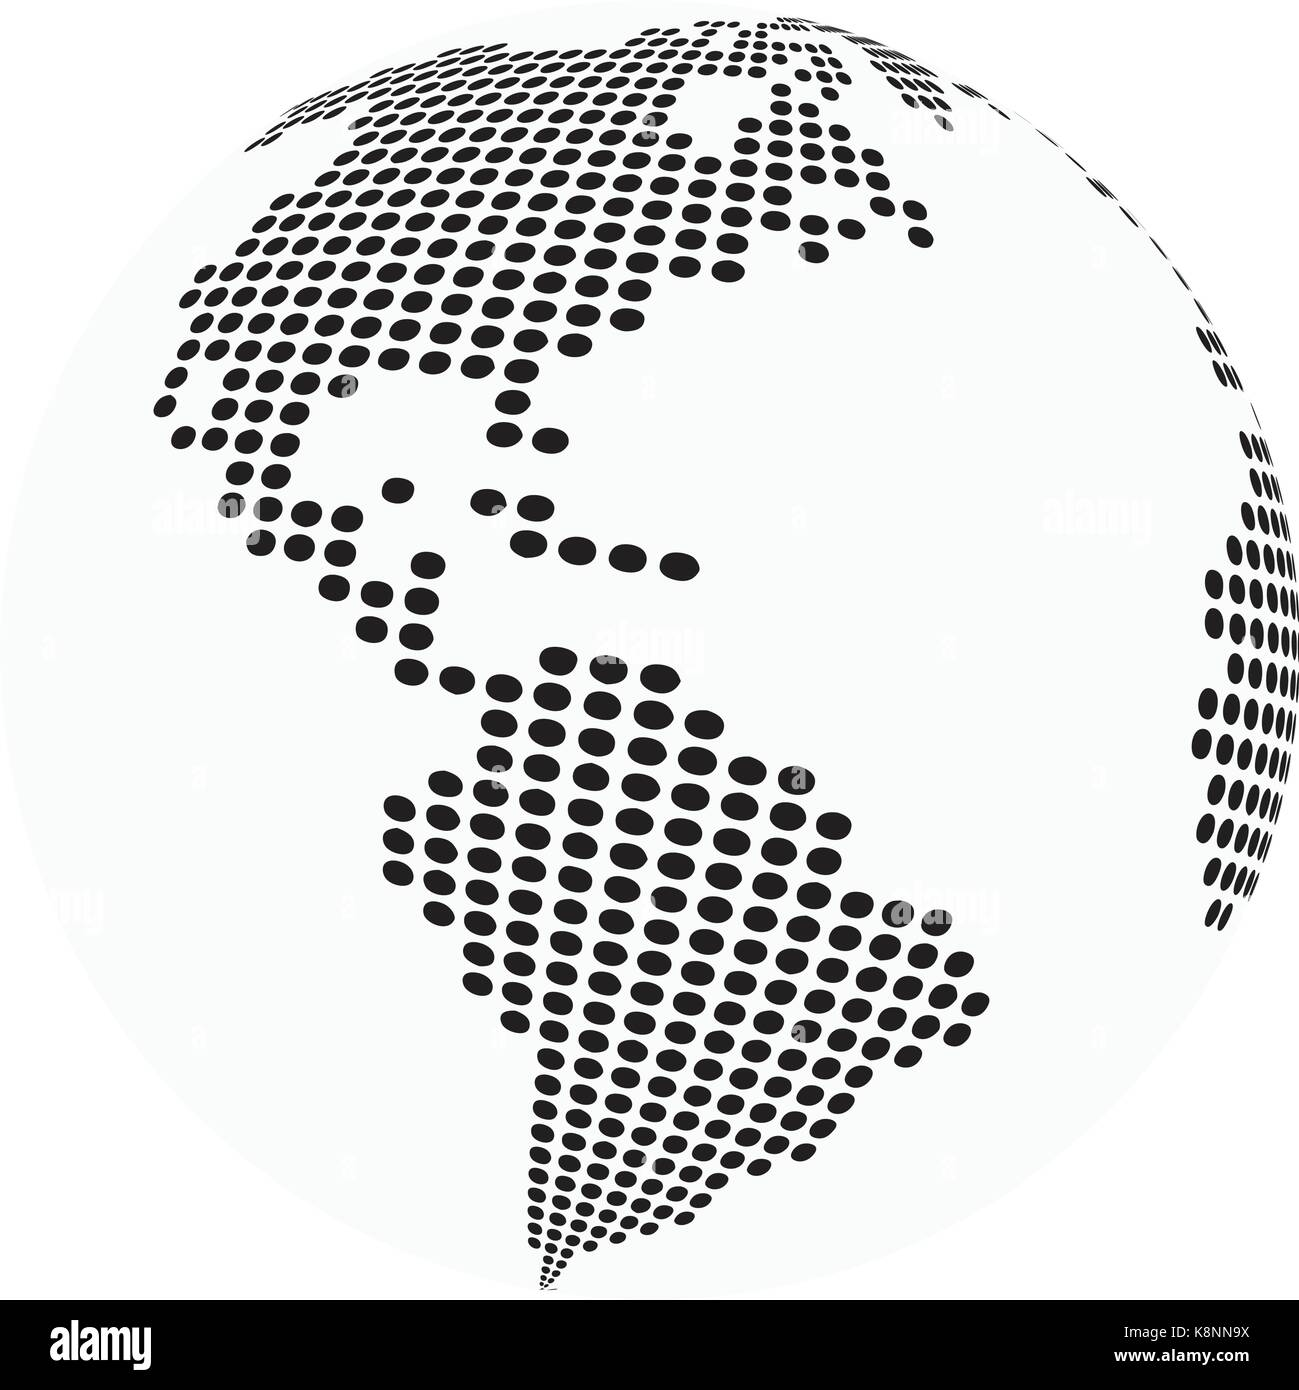 Globe earth world map abstract dotted vector background black and globe earth world map abstract dotted vector background black and white silhouette illustration gumiabroncs Image collections